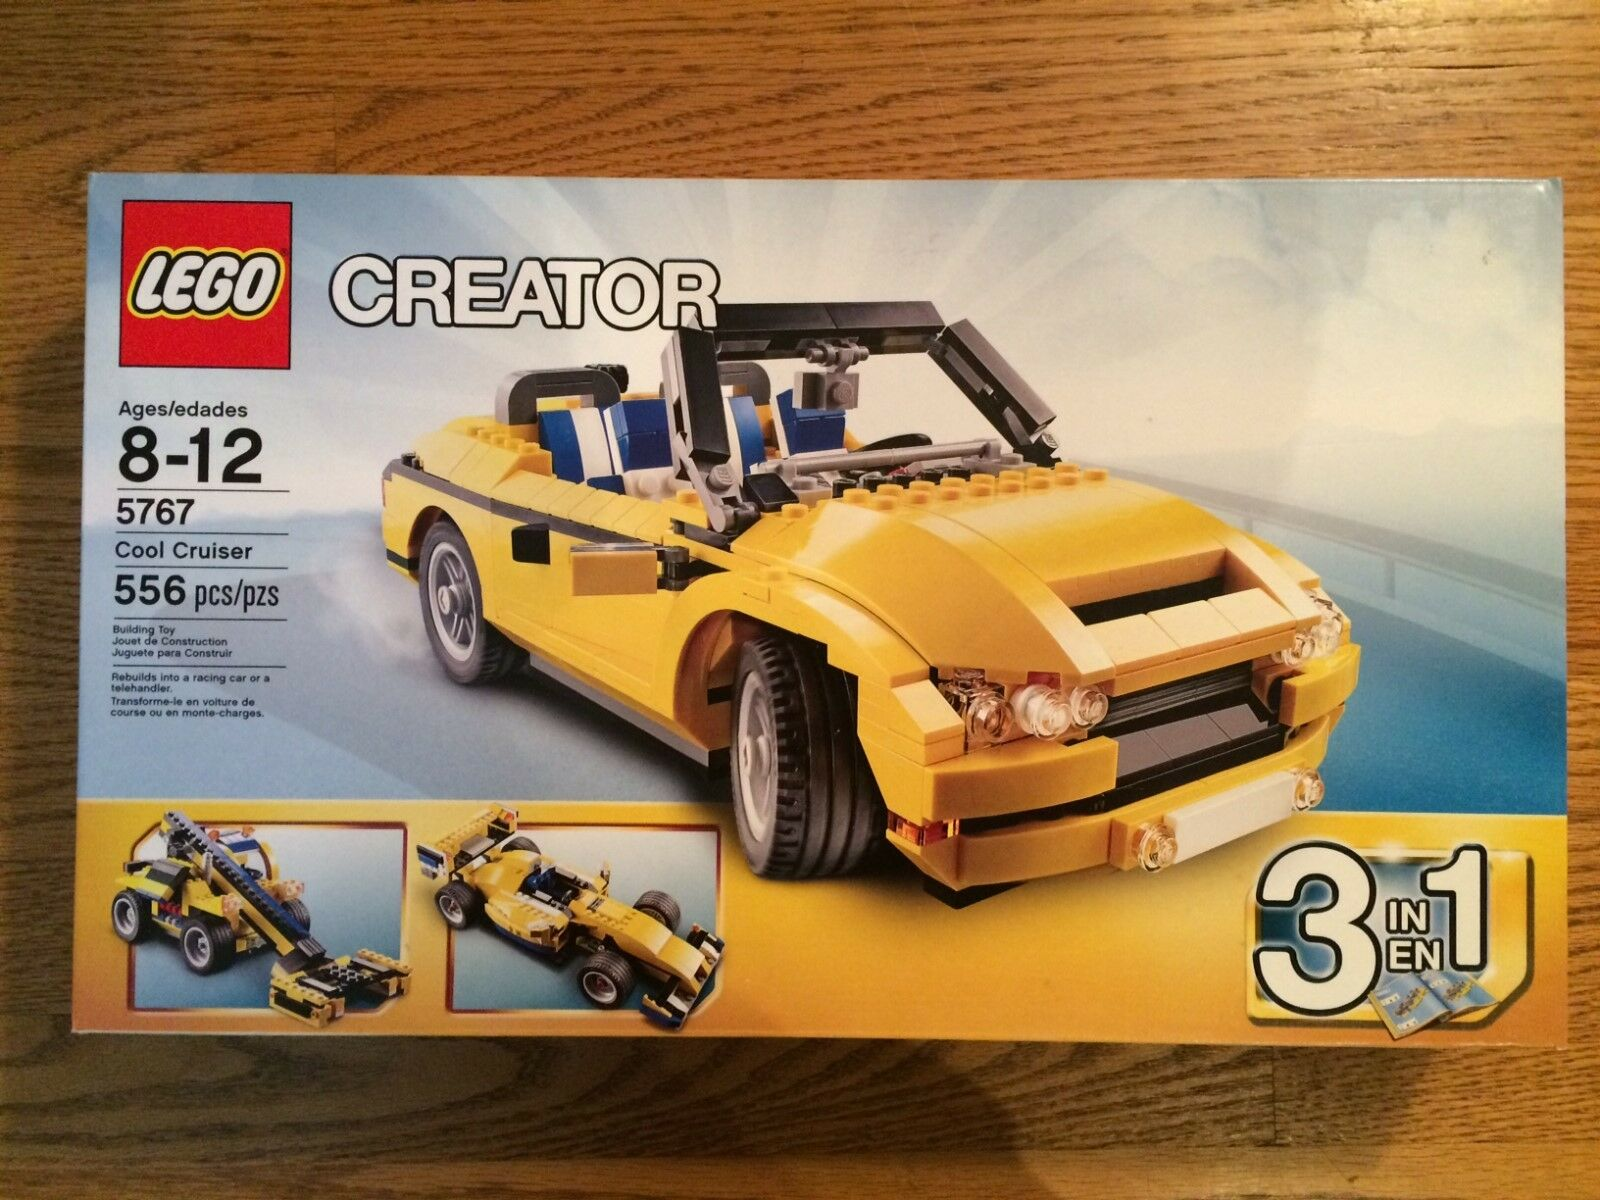 LEGO 5767 Cool Cruiser Car from Creator series. Nuovo in Box